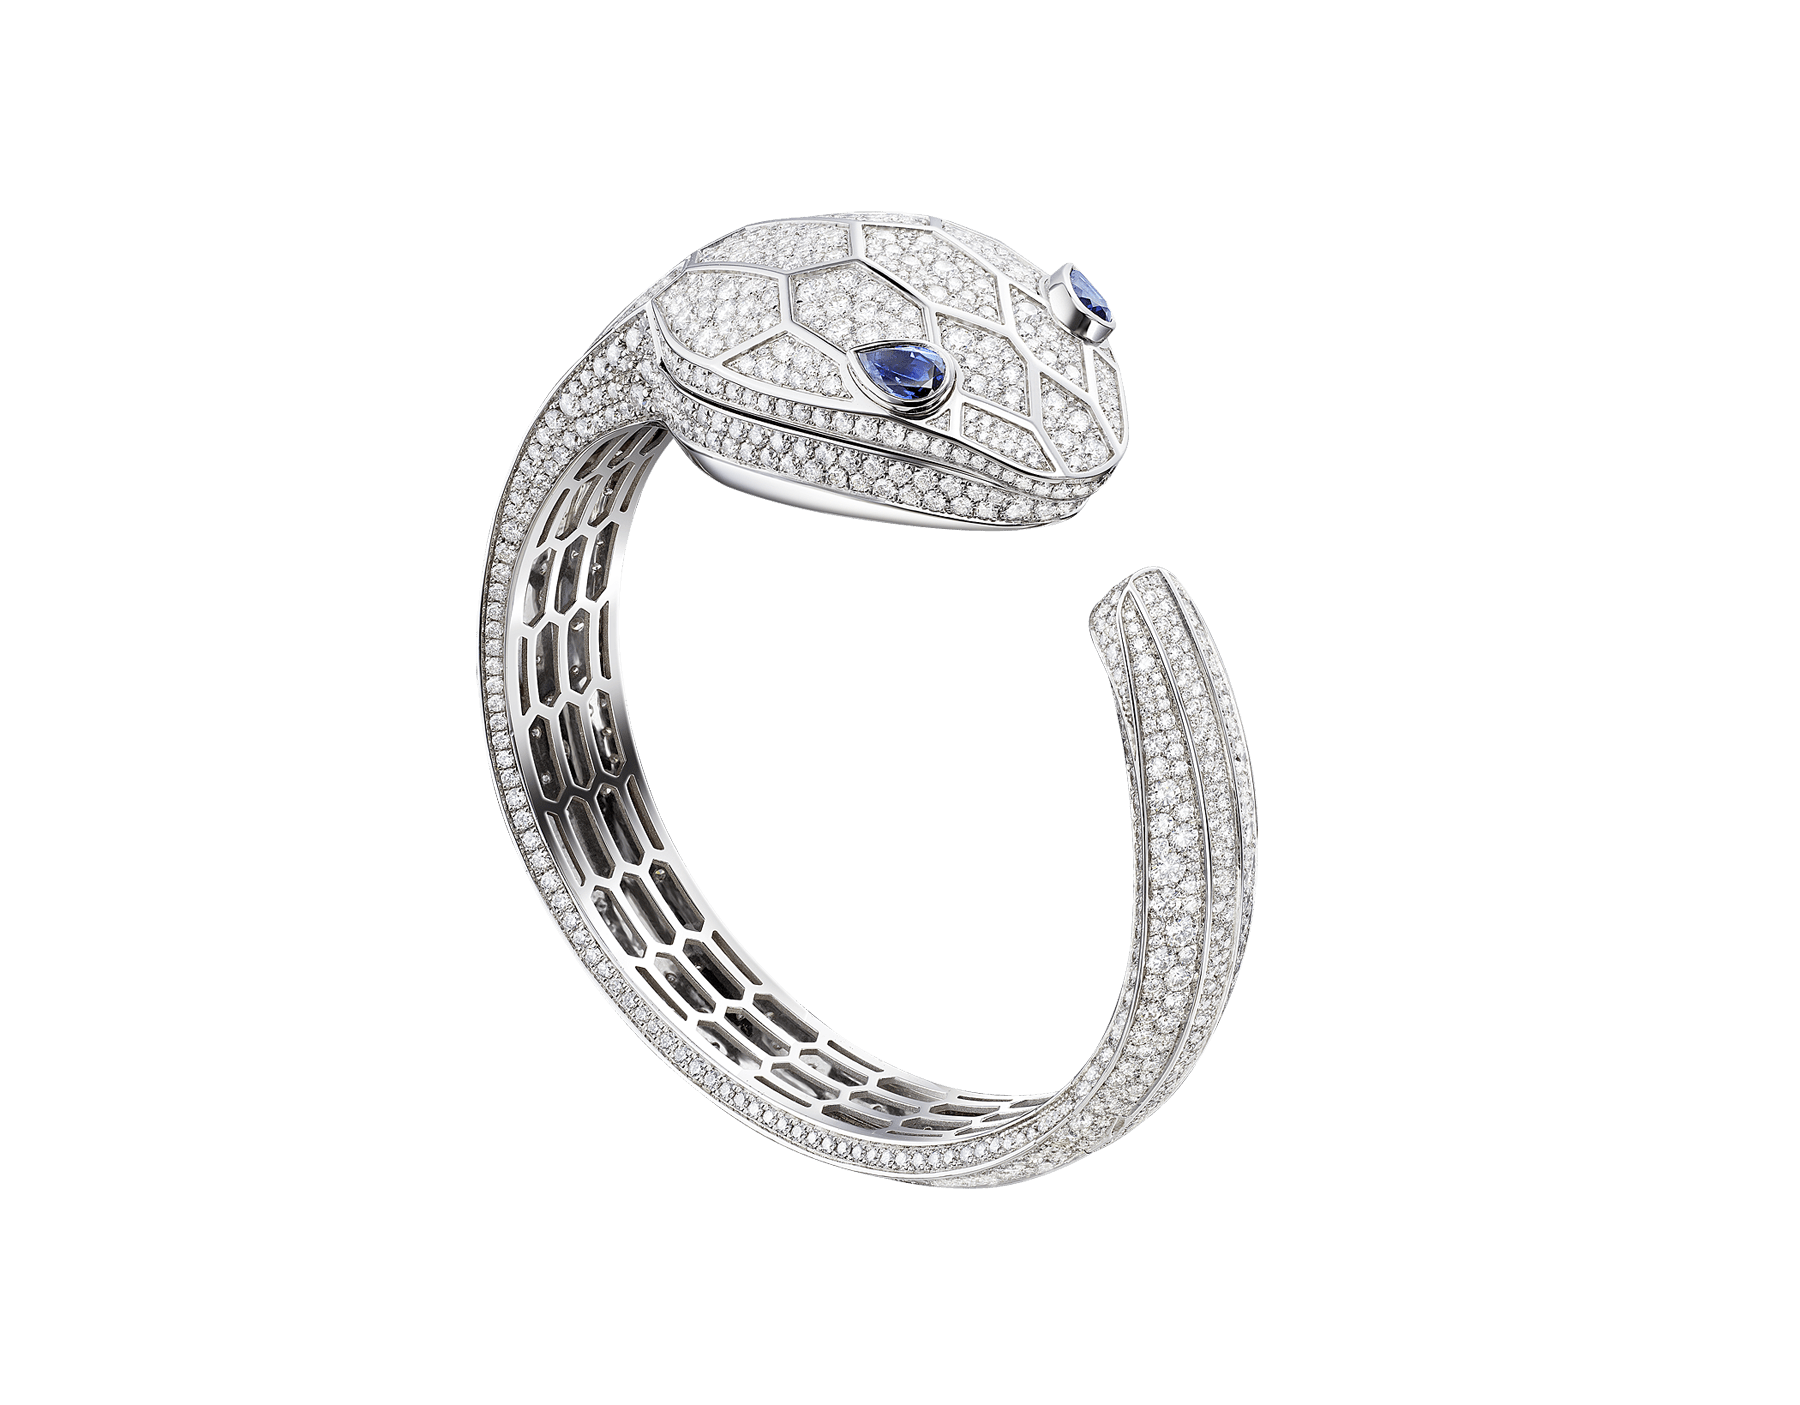 Serpenti Misteriosi Secret Watch in 18 kt white gold case and bangle bracelet, both set with round brilliant-cut diamonds, diamond full pavé dial and pear-shaped sapphire eyes. Small size 102989 image 1